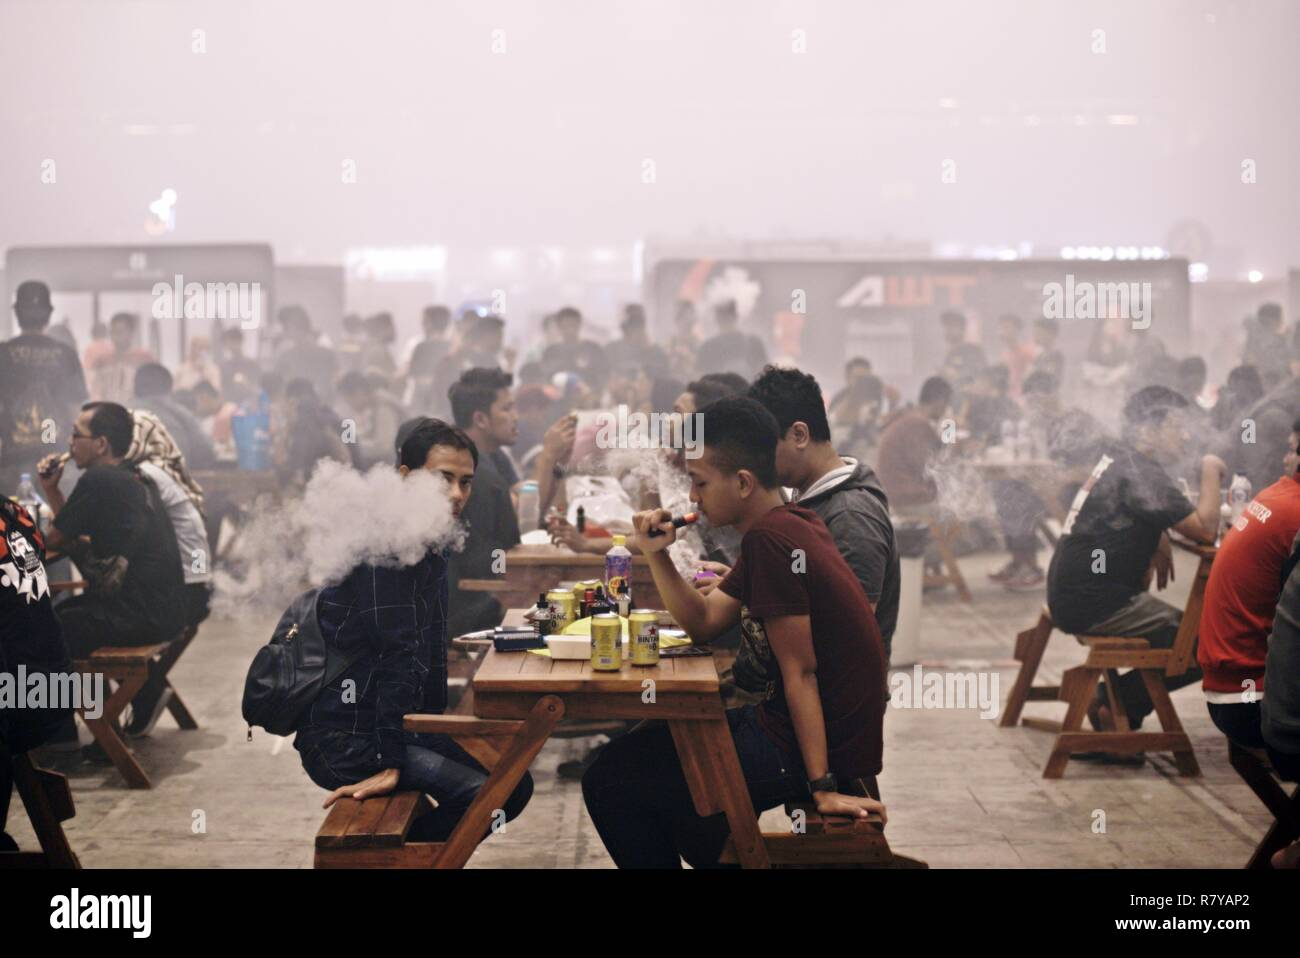 Visitors puff on their e-cigarettes after having meals during the 2018 Vape Fair at Jakarta International Expo, Jakarta, Indonesia. © Reynold Sumayku - Stock Image